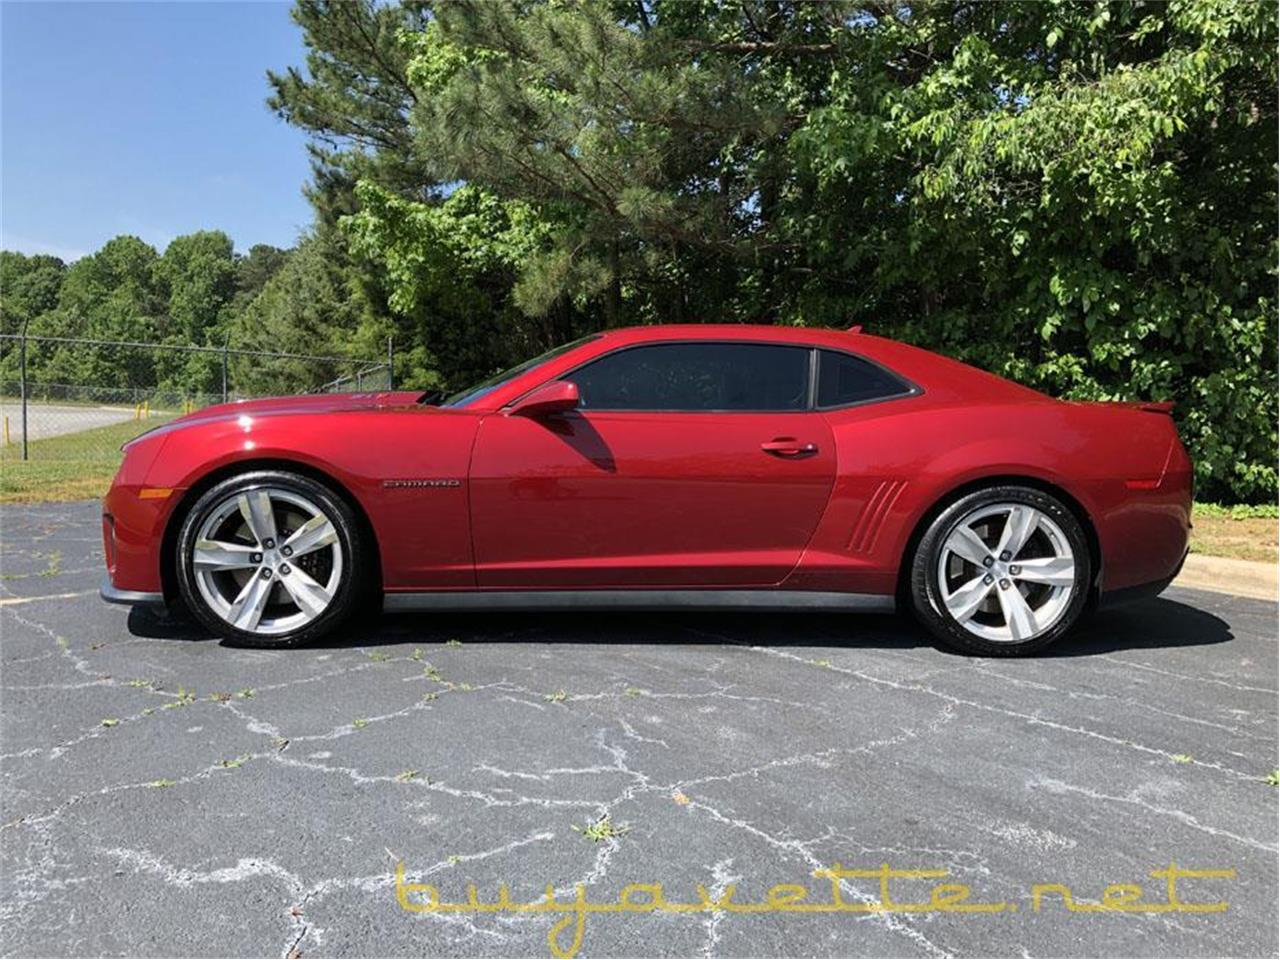 Large Picture of '13 Chevrolet Camaro located in Atlanta Georgia - $38,999.00 Offered by Buyavette - Q1KQ